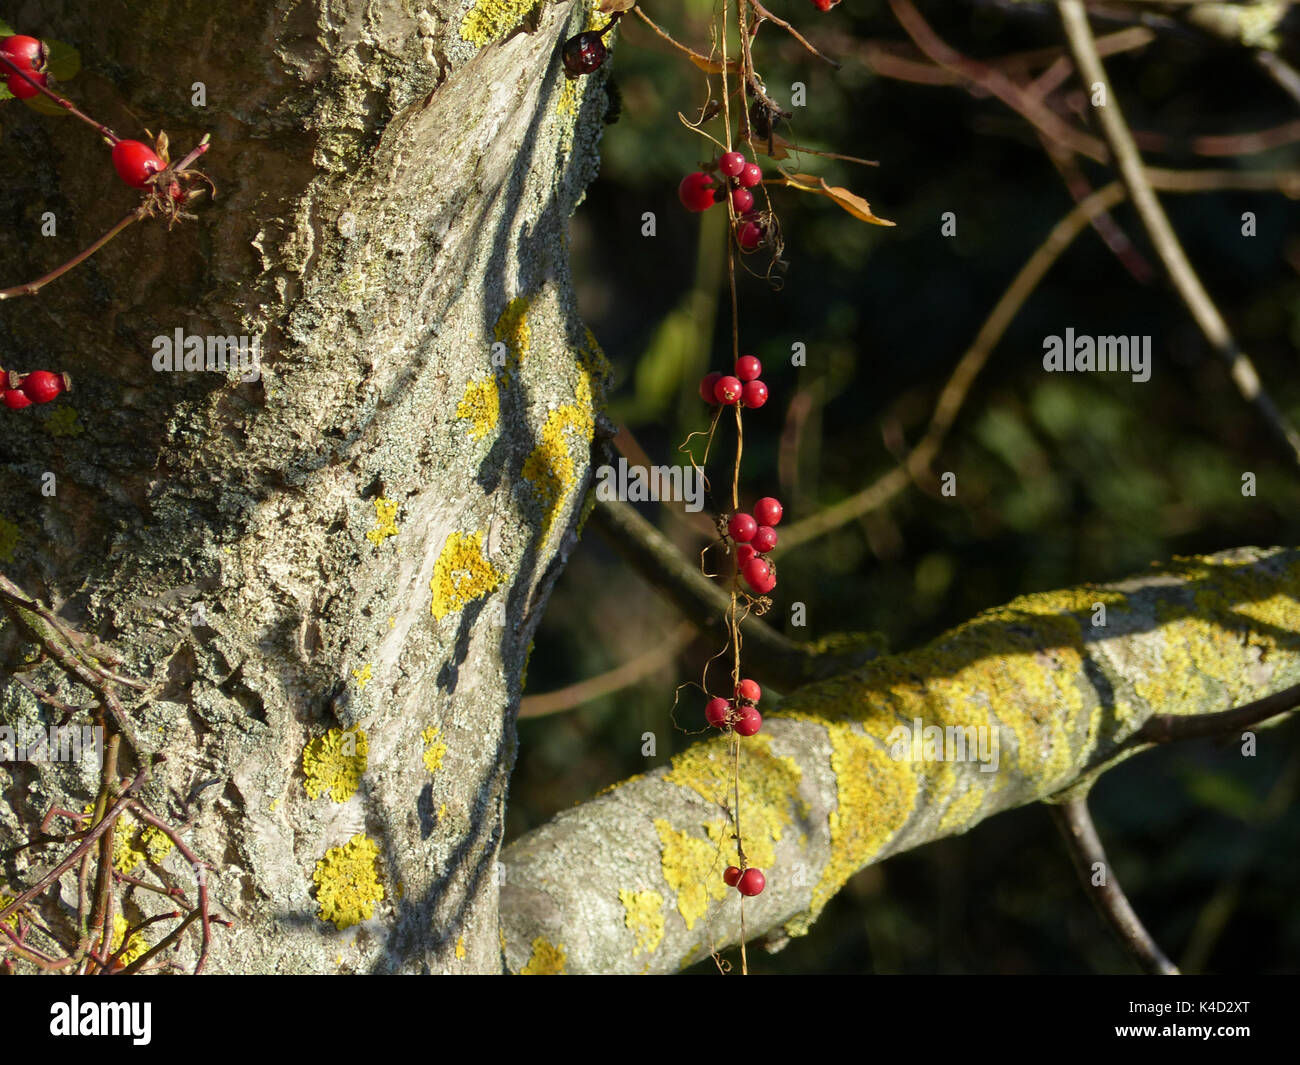 Red Berries Of Bindweed And Red Rose Hips Adorn A Tree - Stock Image